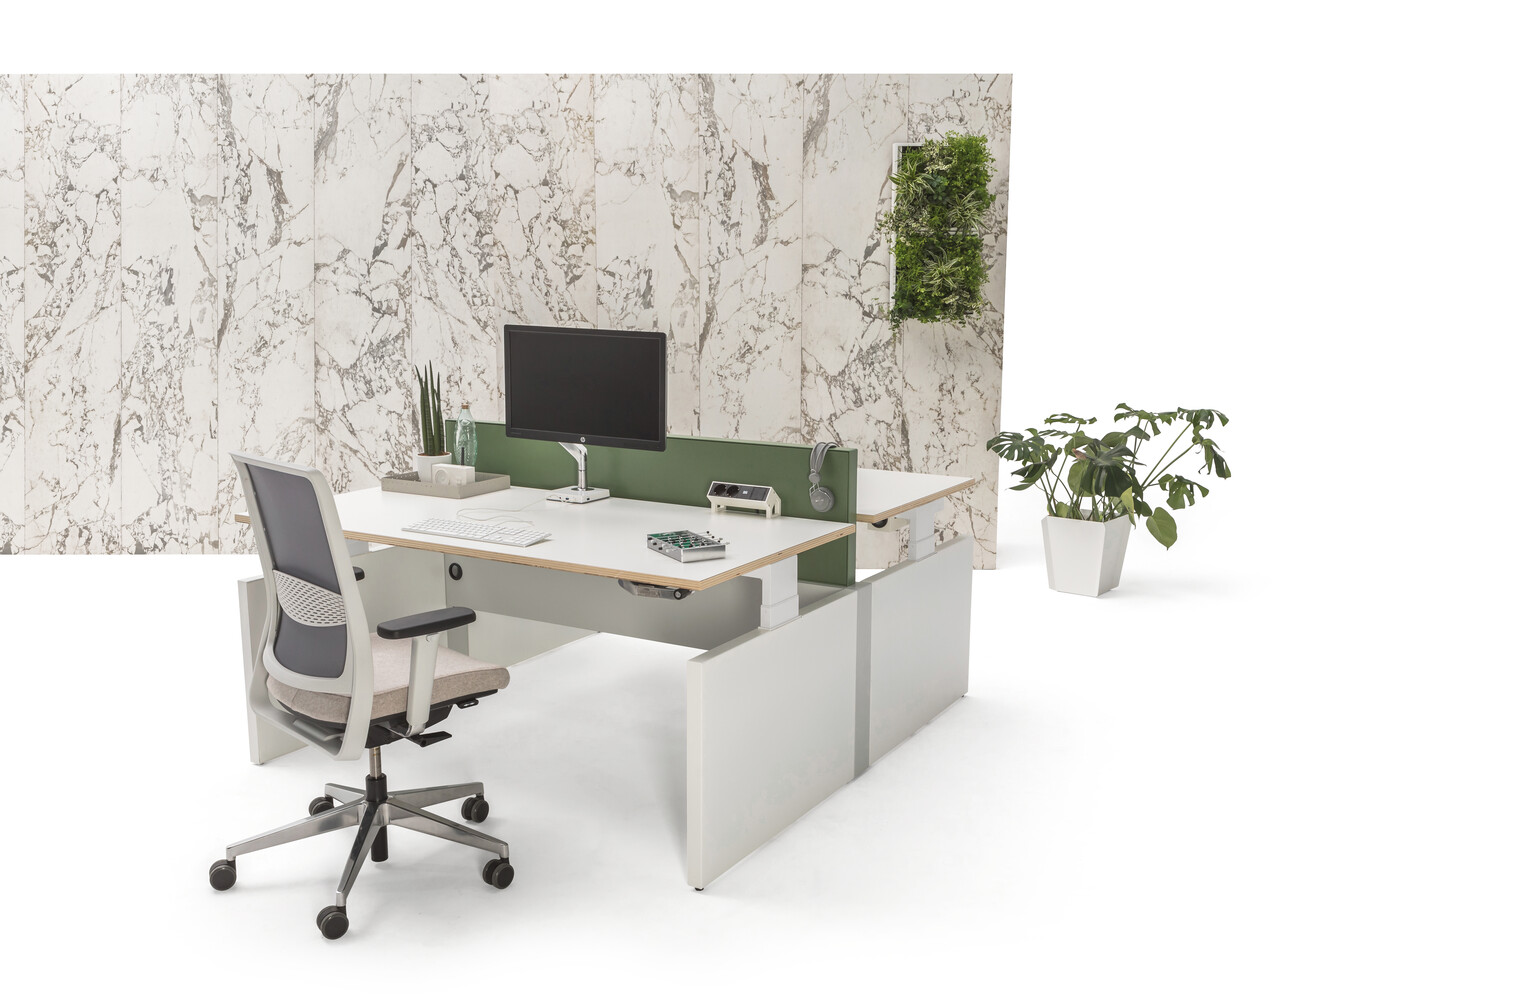 Gispen Cimo dual table with white frame and mono linkable panel legs with white chipboard tabletops and green steel screen perforated with grey Zinn office chair  front right view